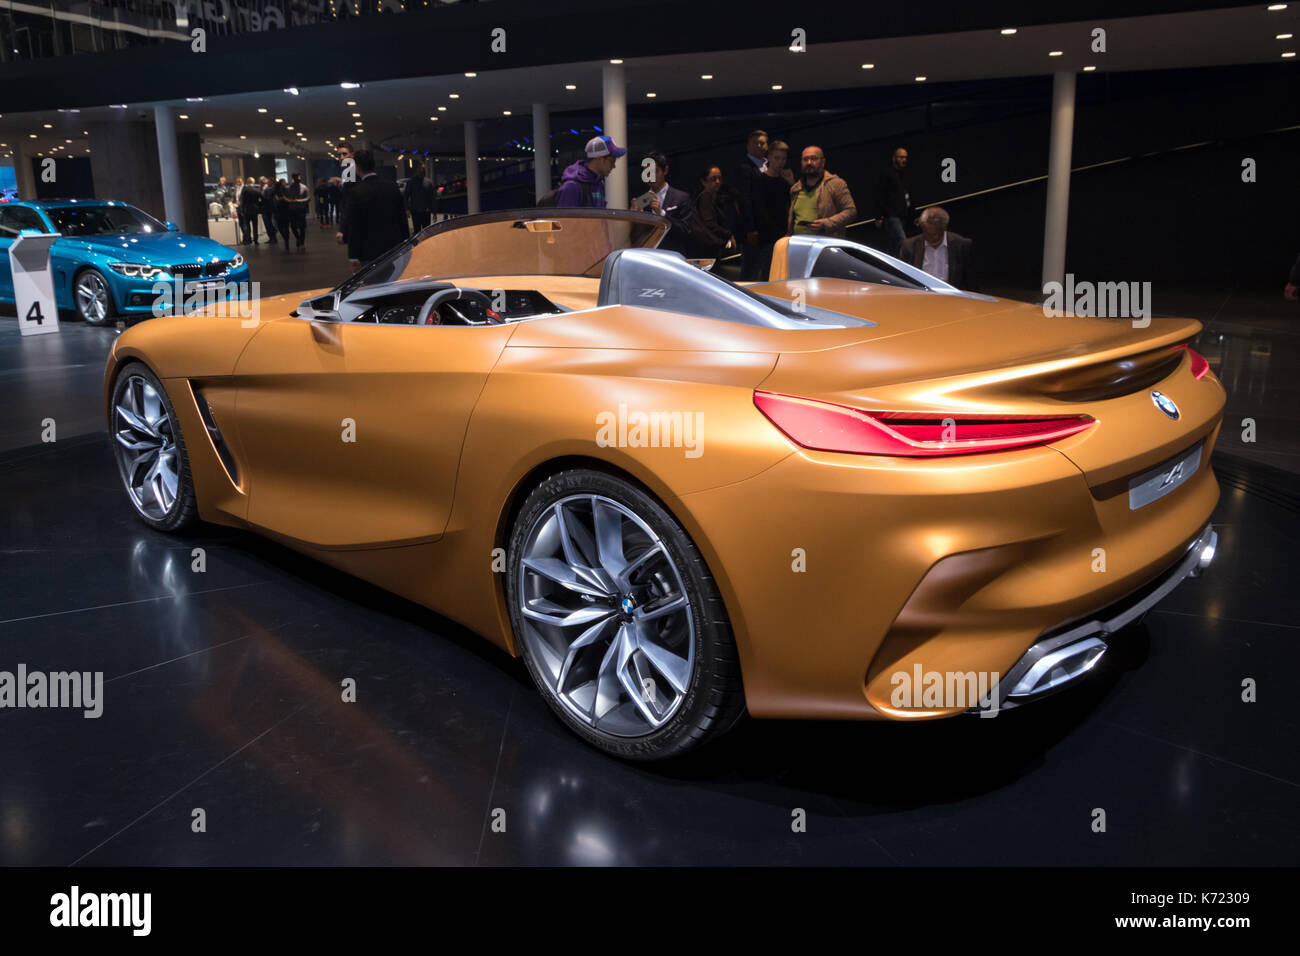 Z4 Stock Photos Amp Z4 Stock Images Alamy